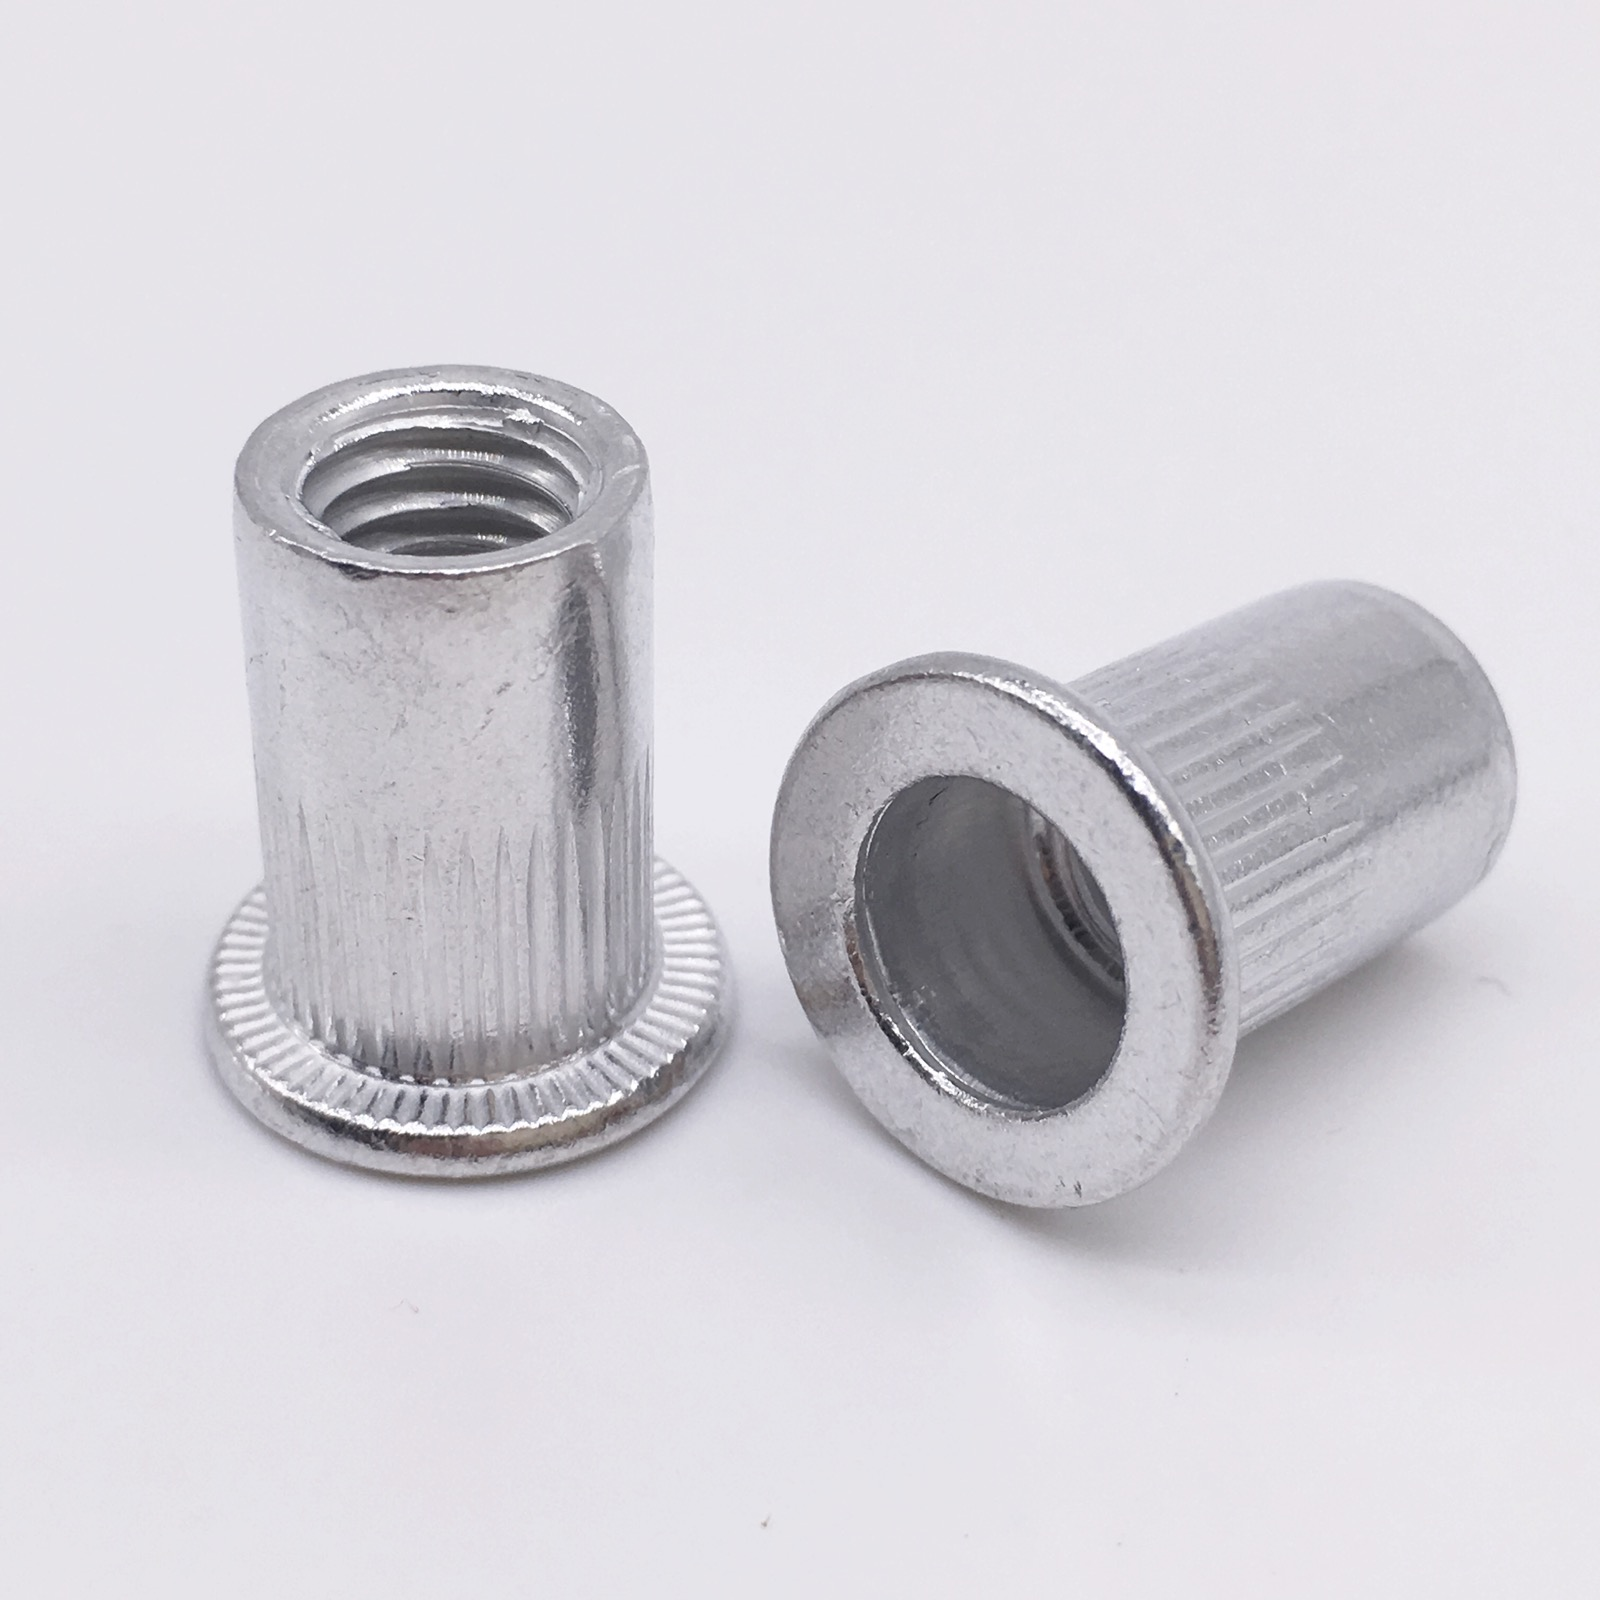 M4 M5 M6 M10 Aluminum Rivets Nuts Threaded Inserts Nutserts Rivnut ...